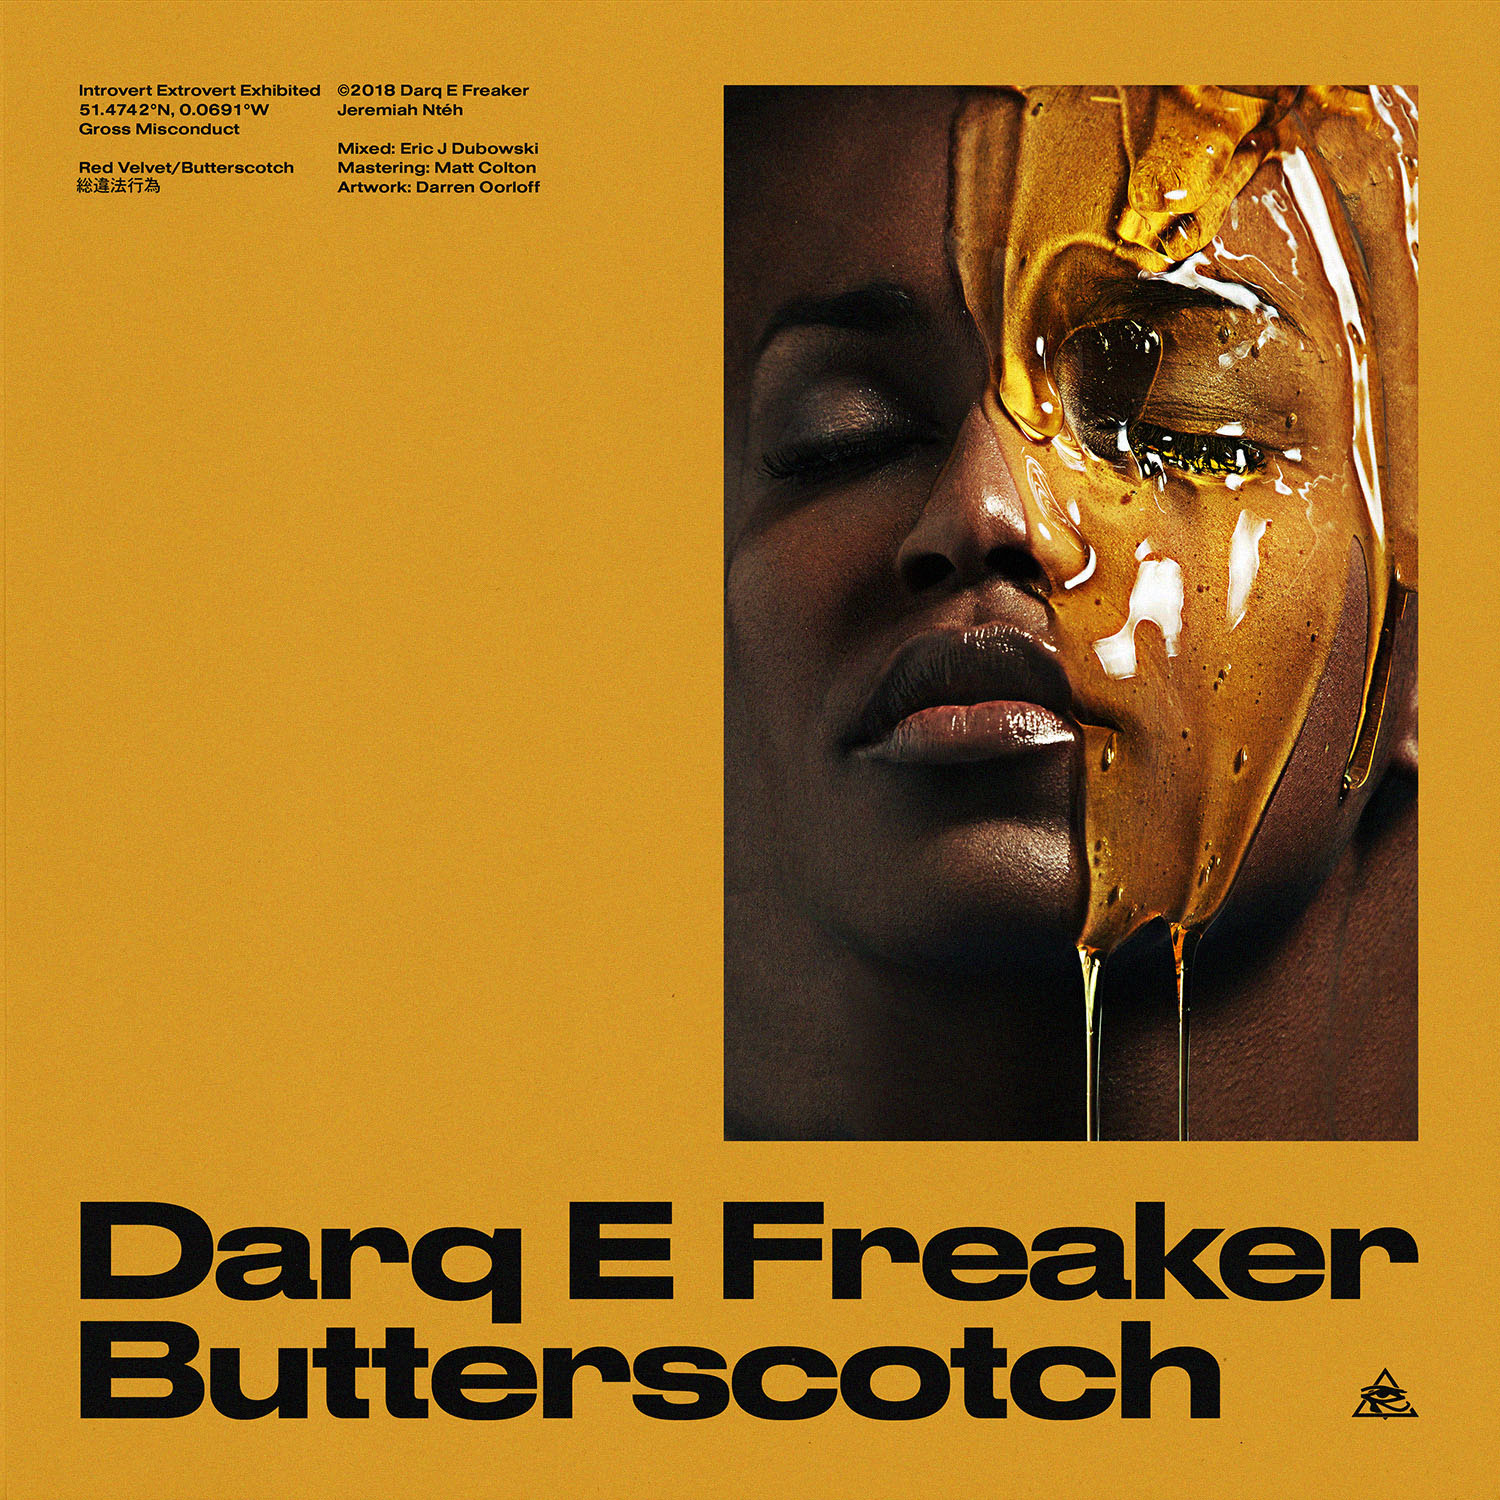 Darq E Freaker - Butterscotch